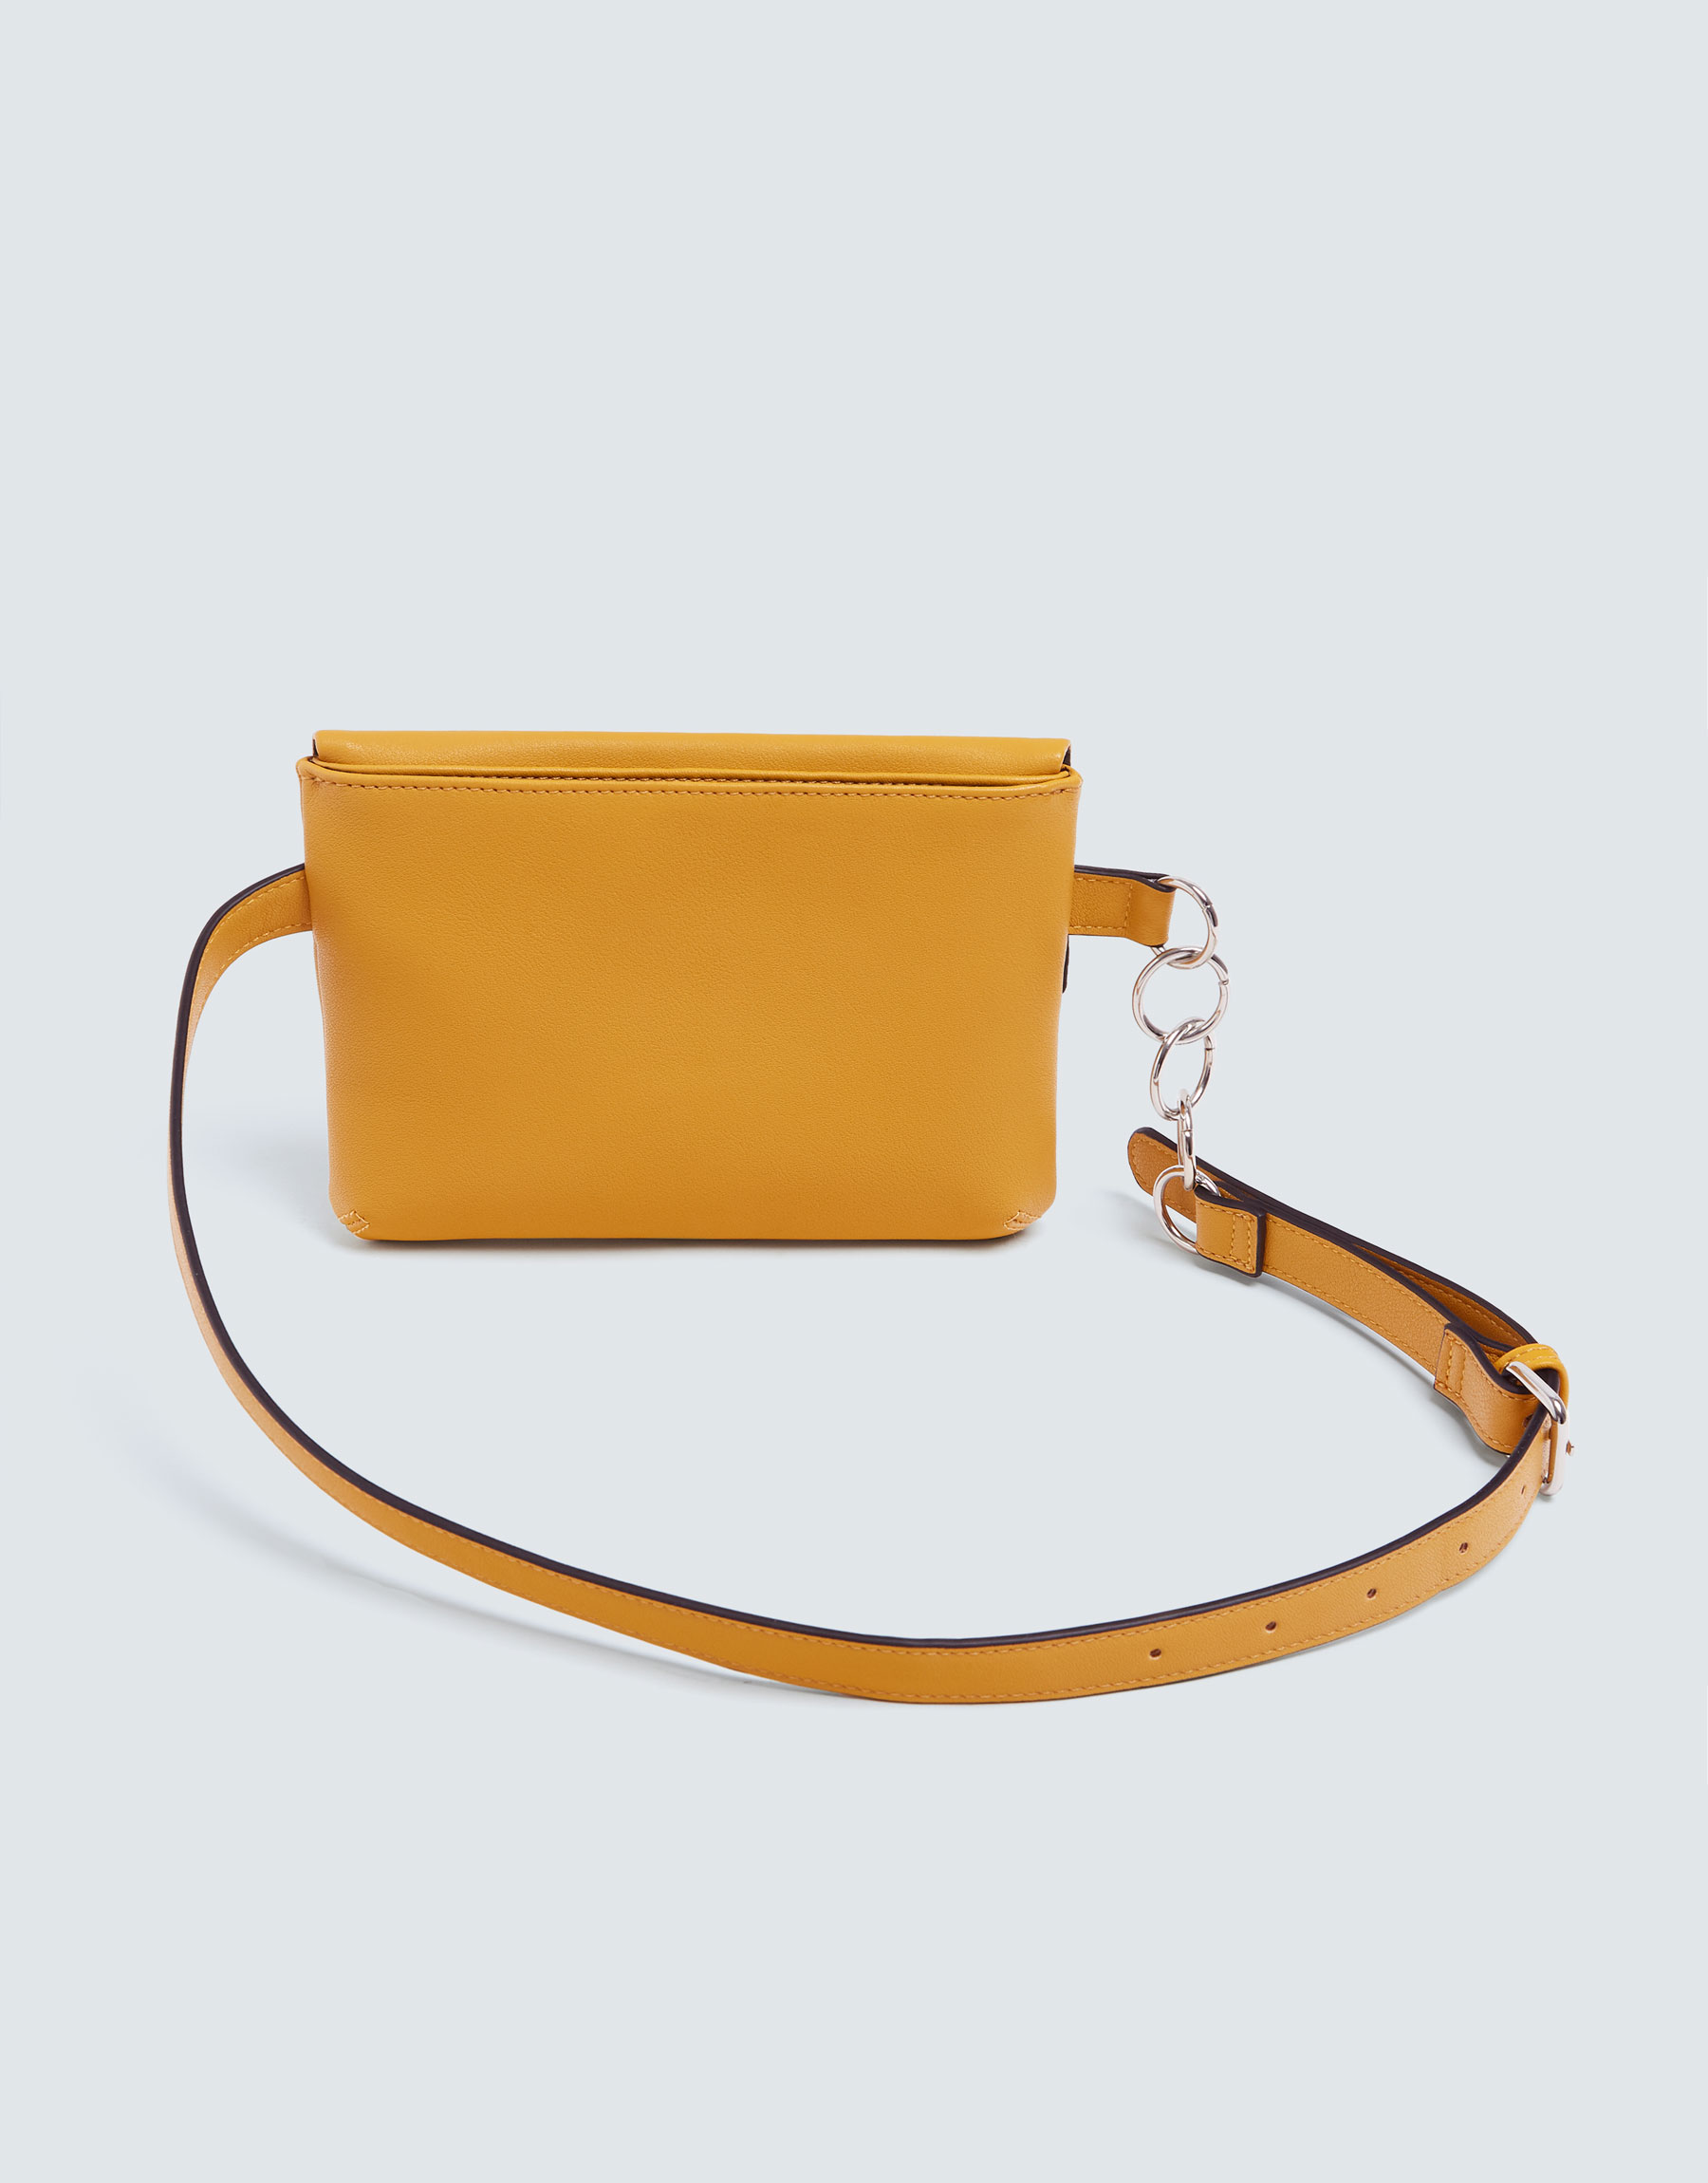 5d4479c4f79c Pull & Bear Mustard yellow belt bag with chain detail at £15.99 ...